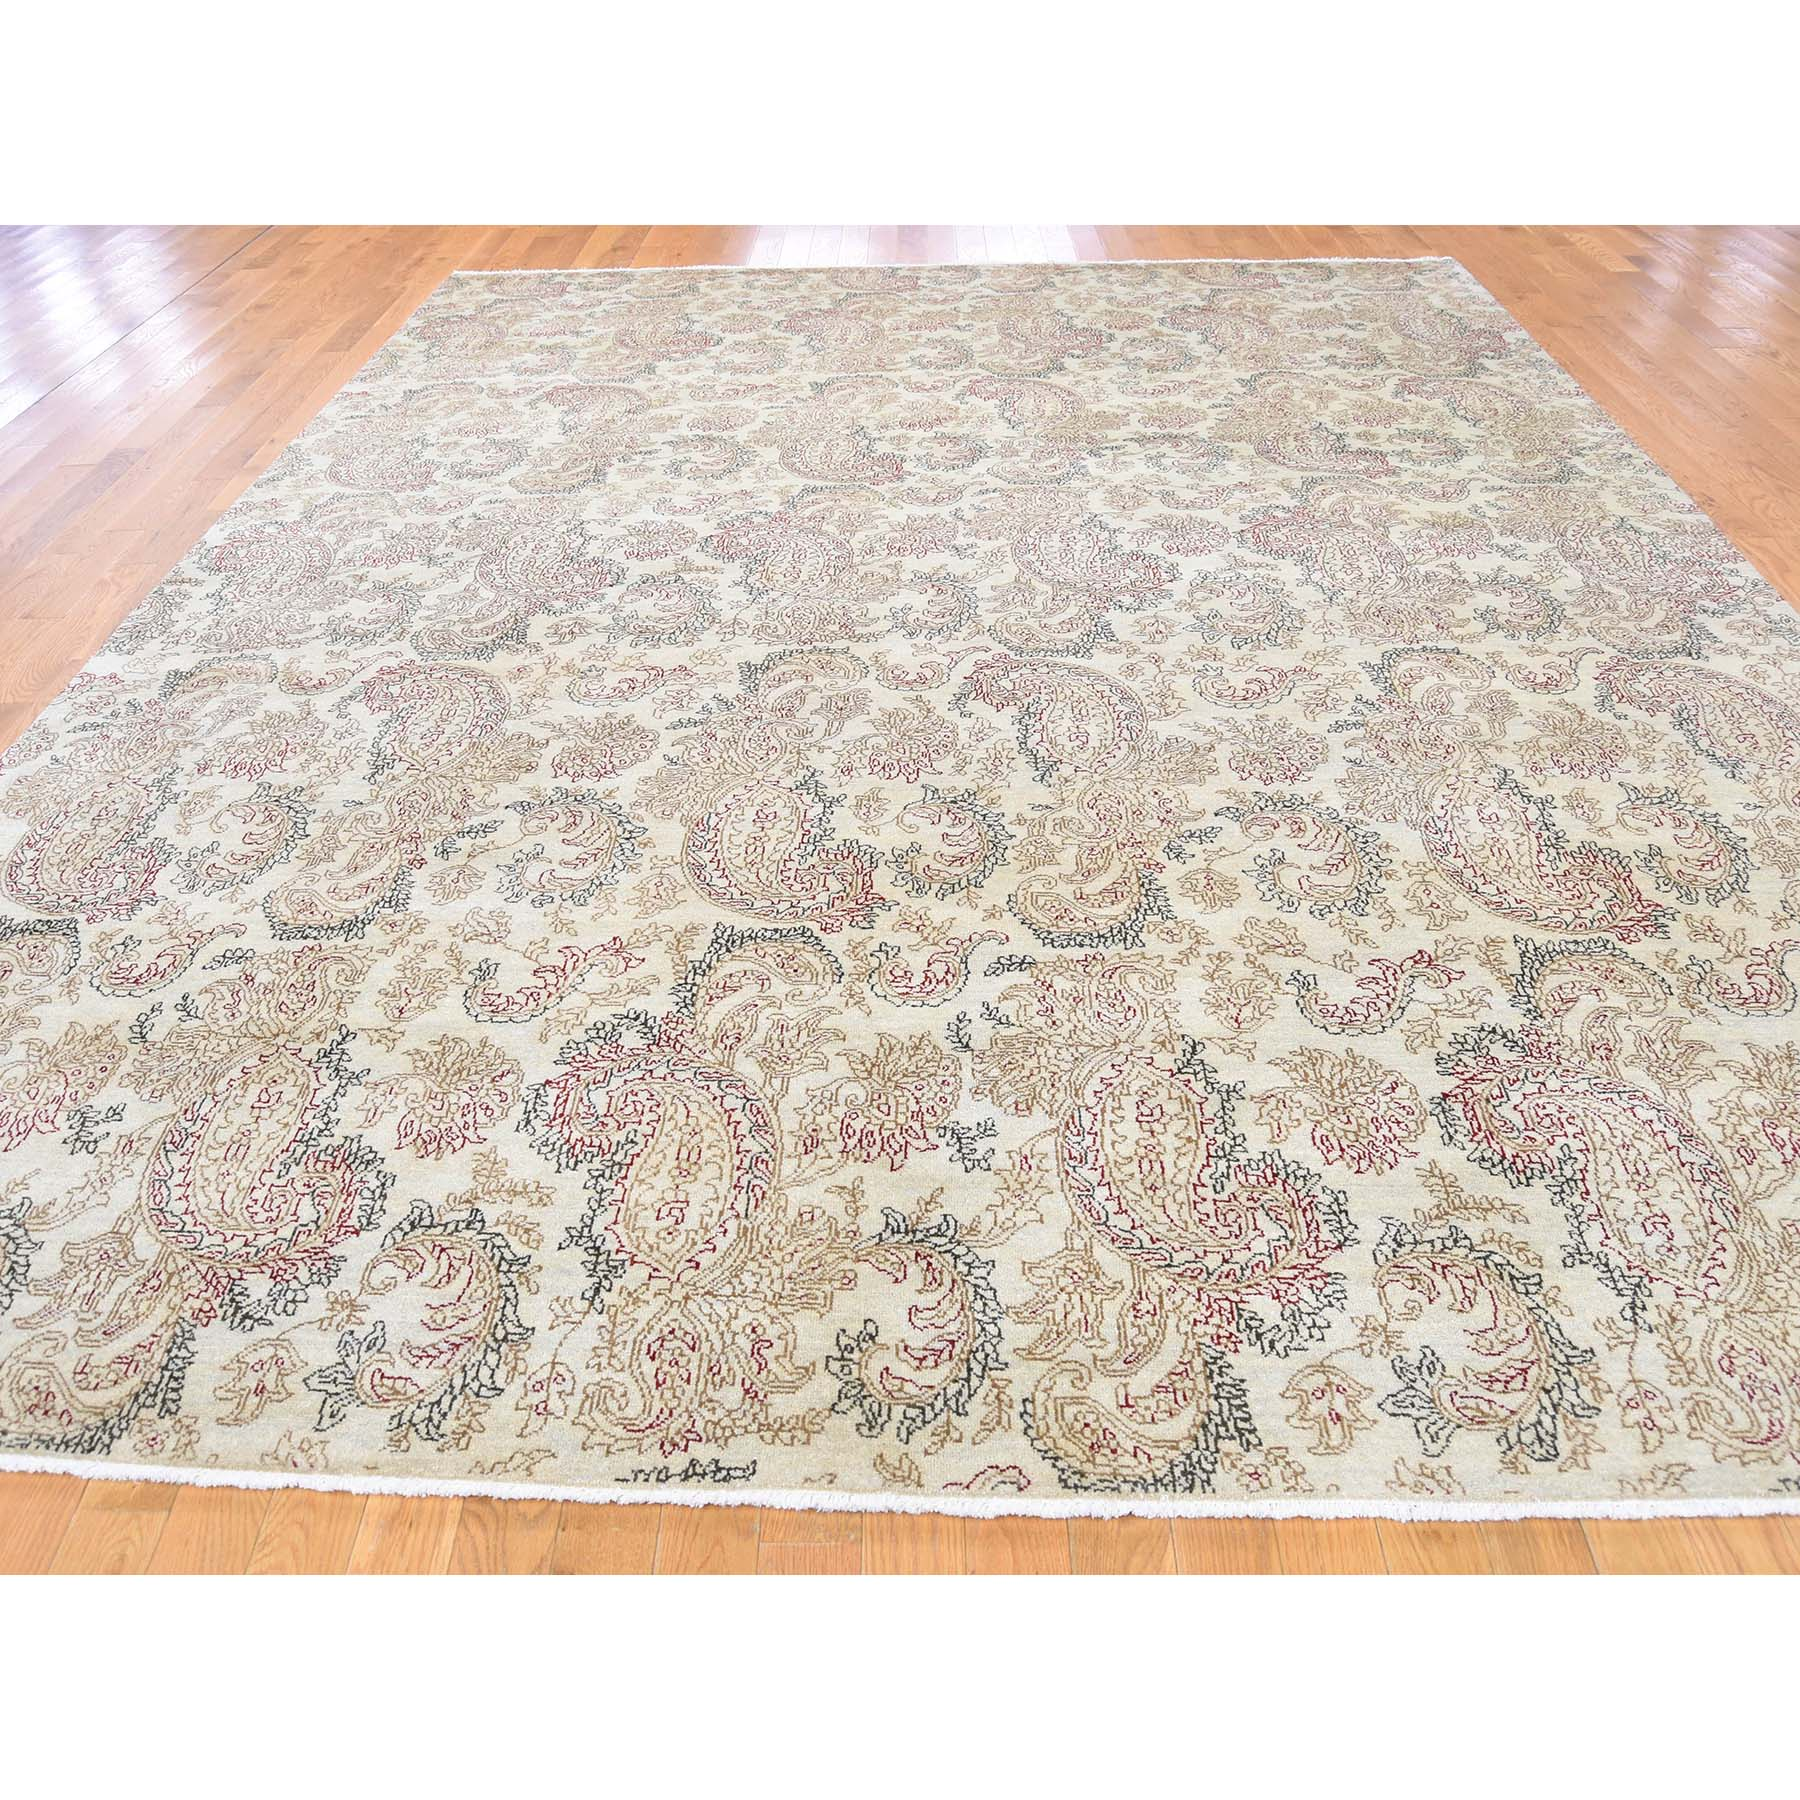 9-1 x12-3  Agra with Paisley Design 100 Percent Wool Hand-Knotted Oriental Rug